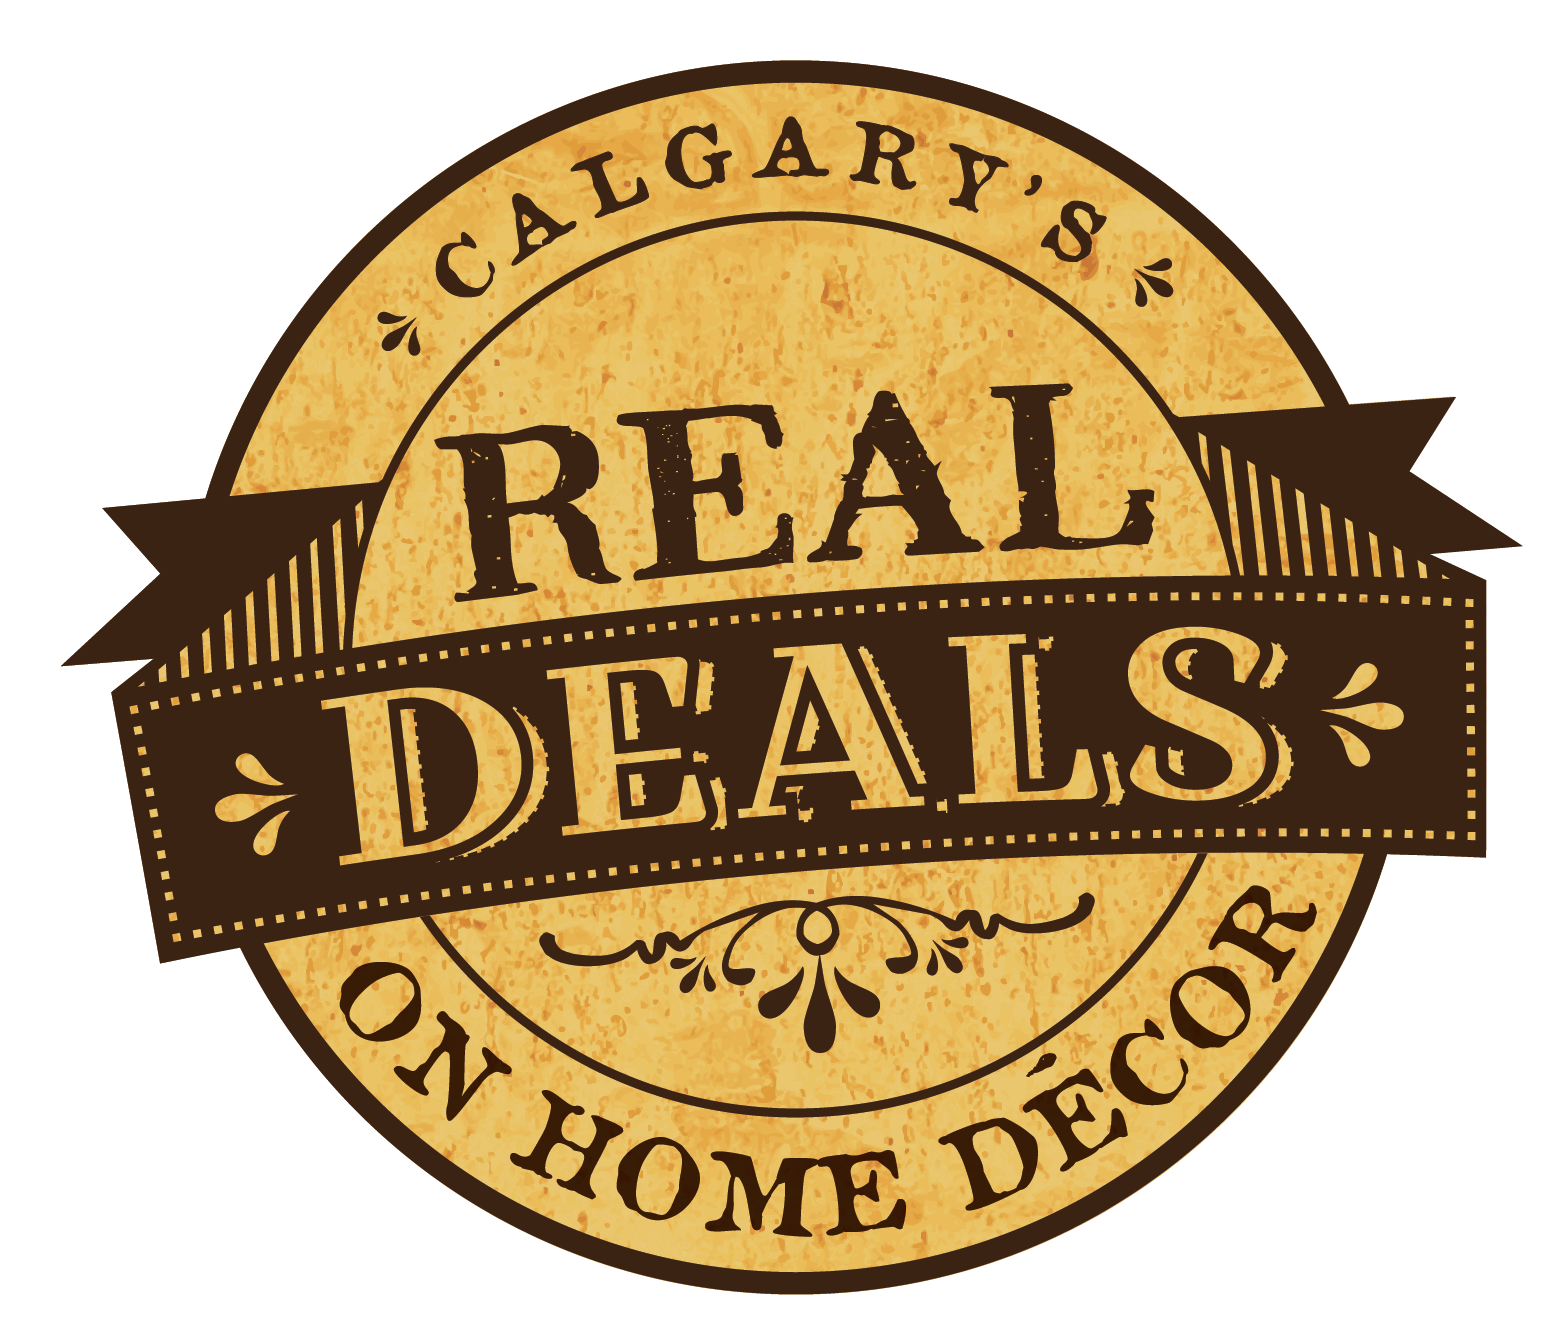 Home Decor Calgary breathtaking home decor adorable home decor calgary Real Deals On Home Decor My City And State